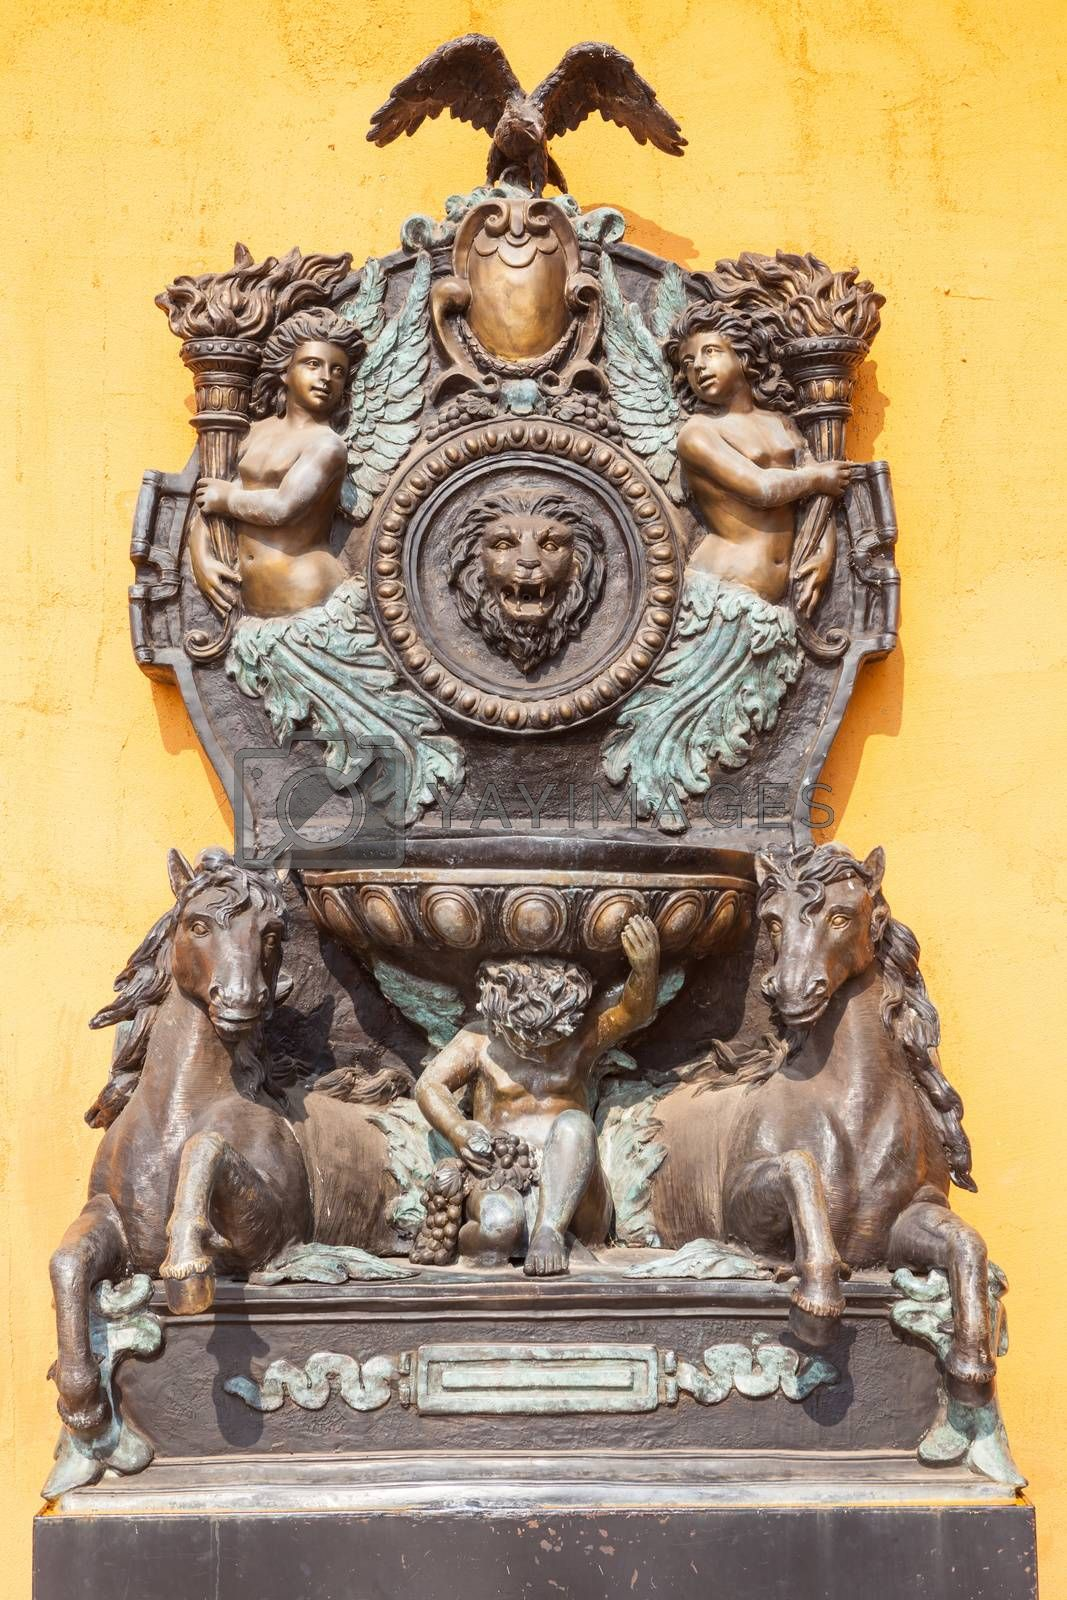 Beautiful Sculpture European style on yellow wall background